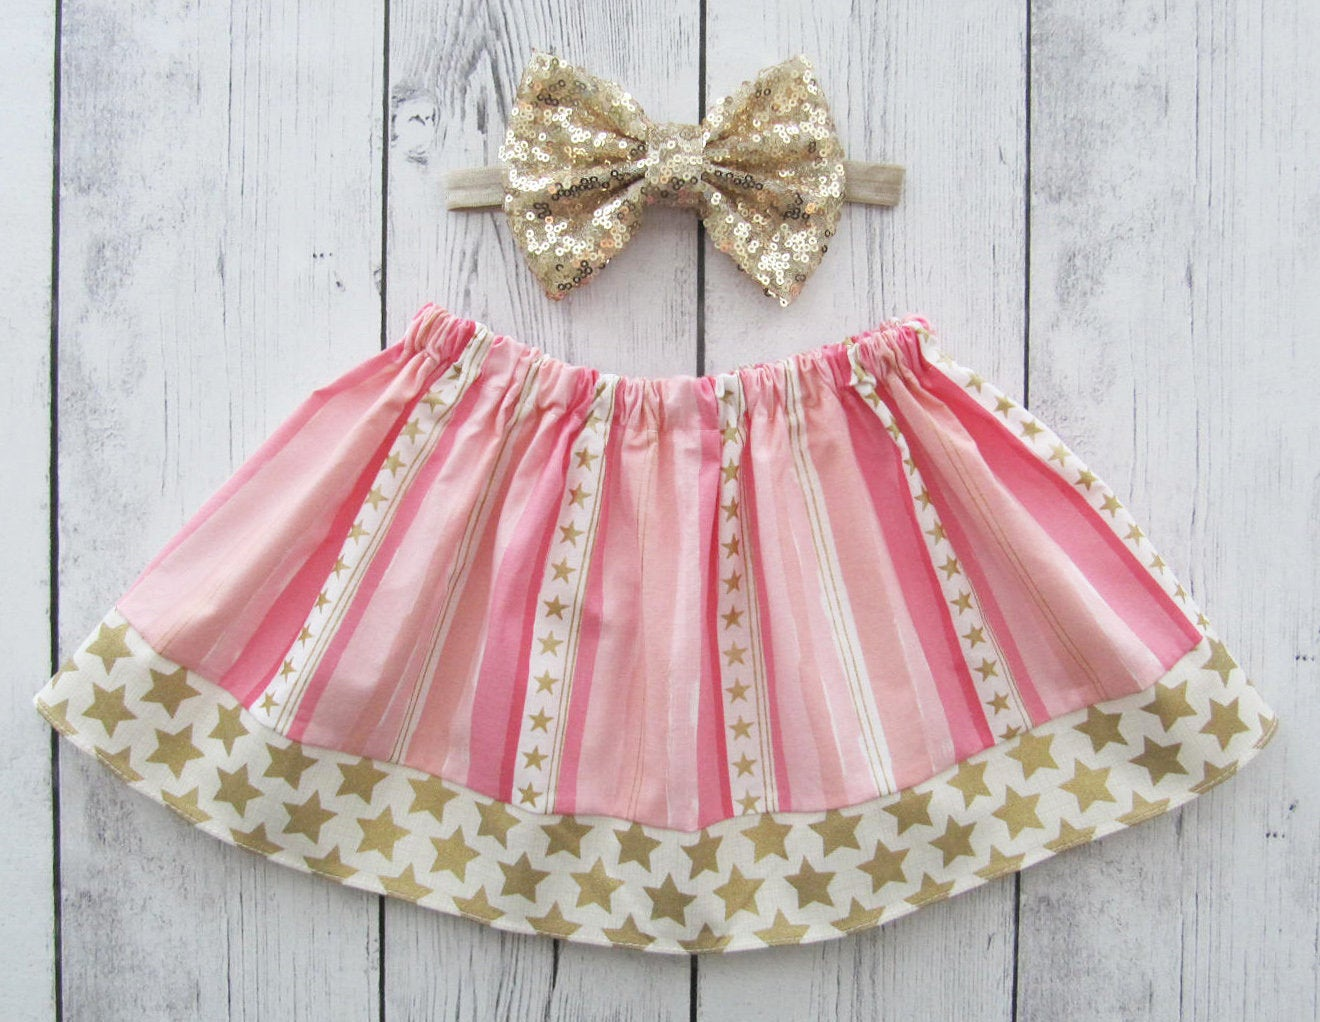 Twinkle Twinkle Little Star Skirt for baby girl - pink gold skirt, twinkle twinkle skirt, baby girl skirt, pink gold star skirt